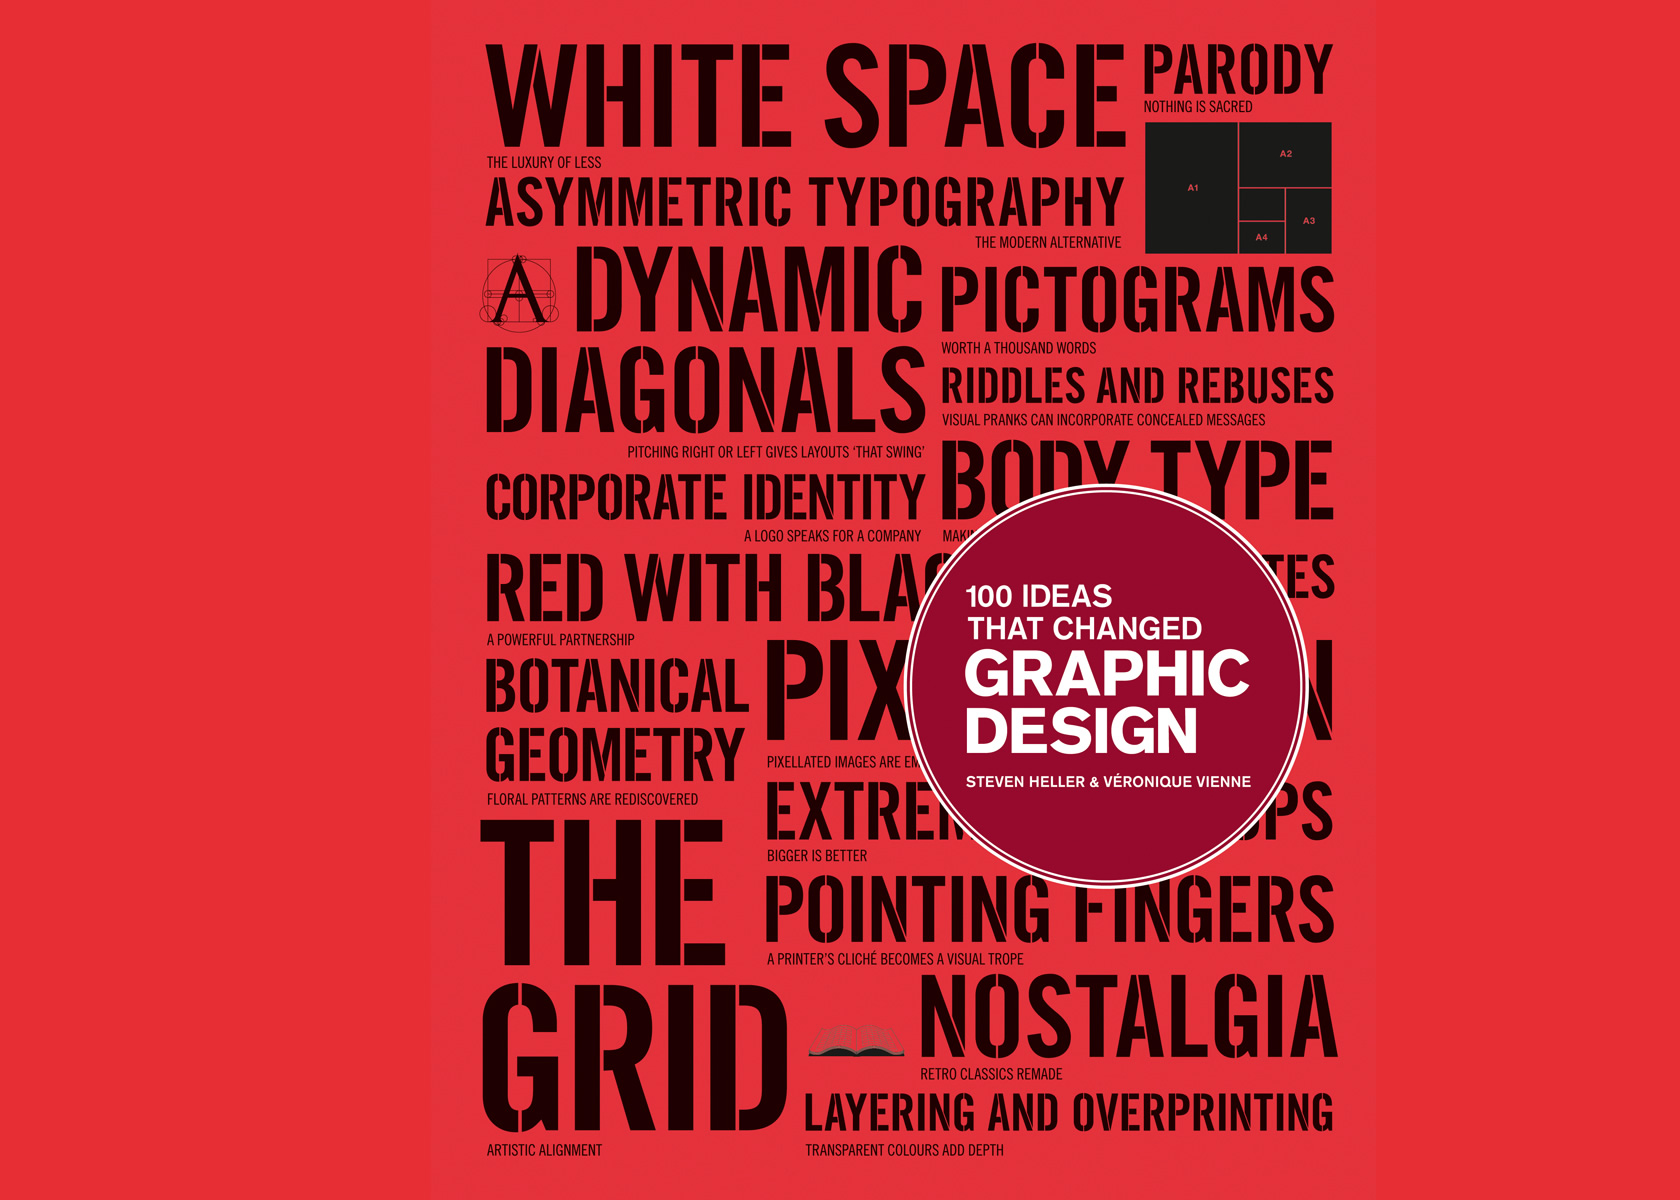 100 ideas that changed graphic design book suggestion